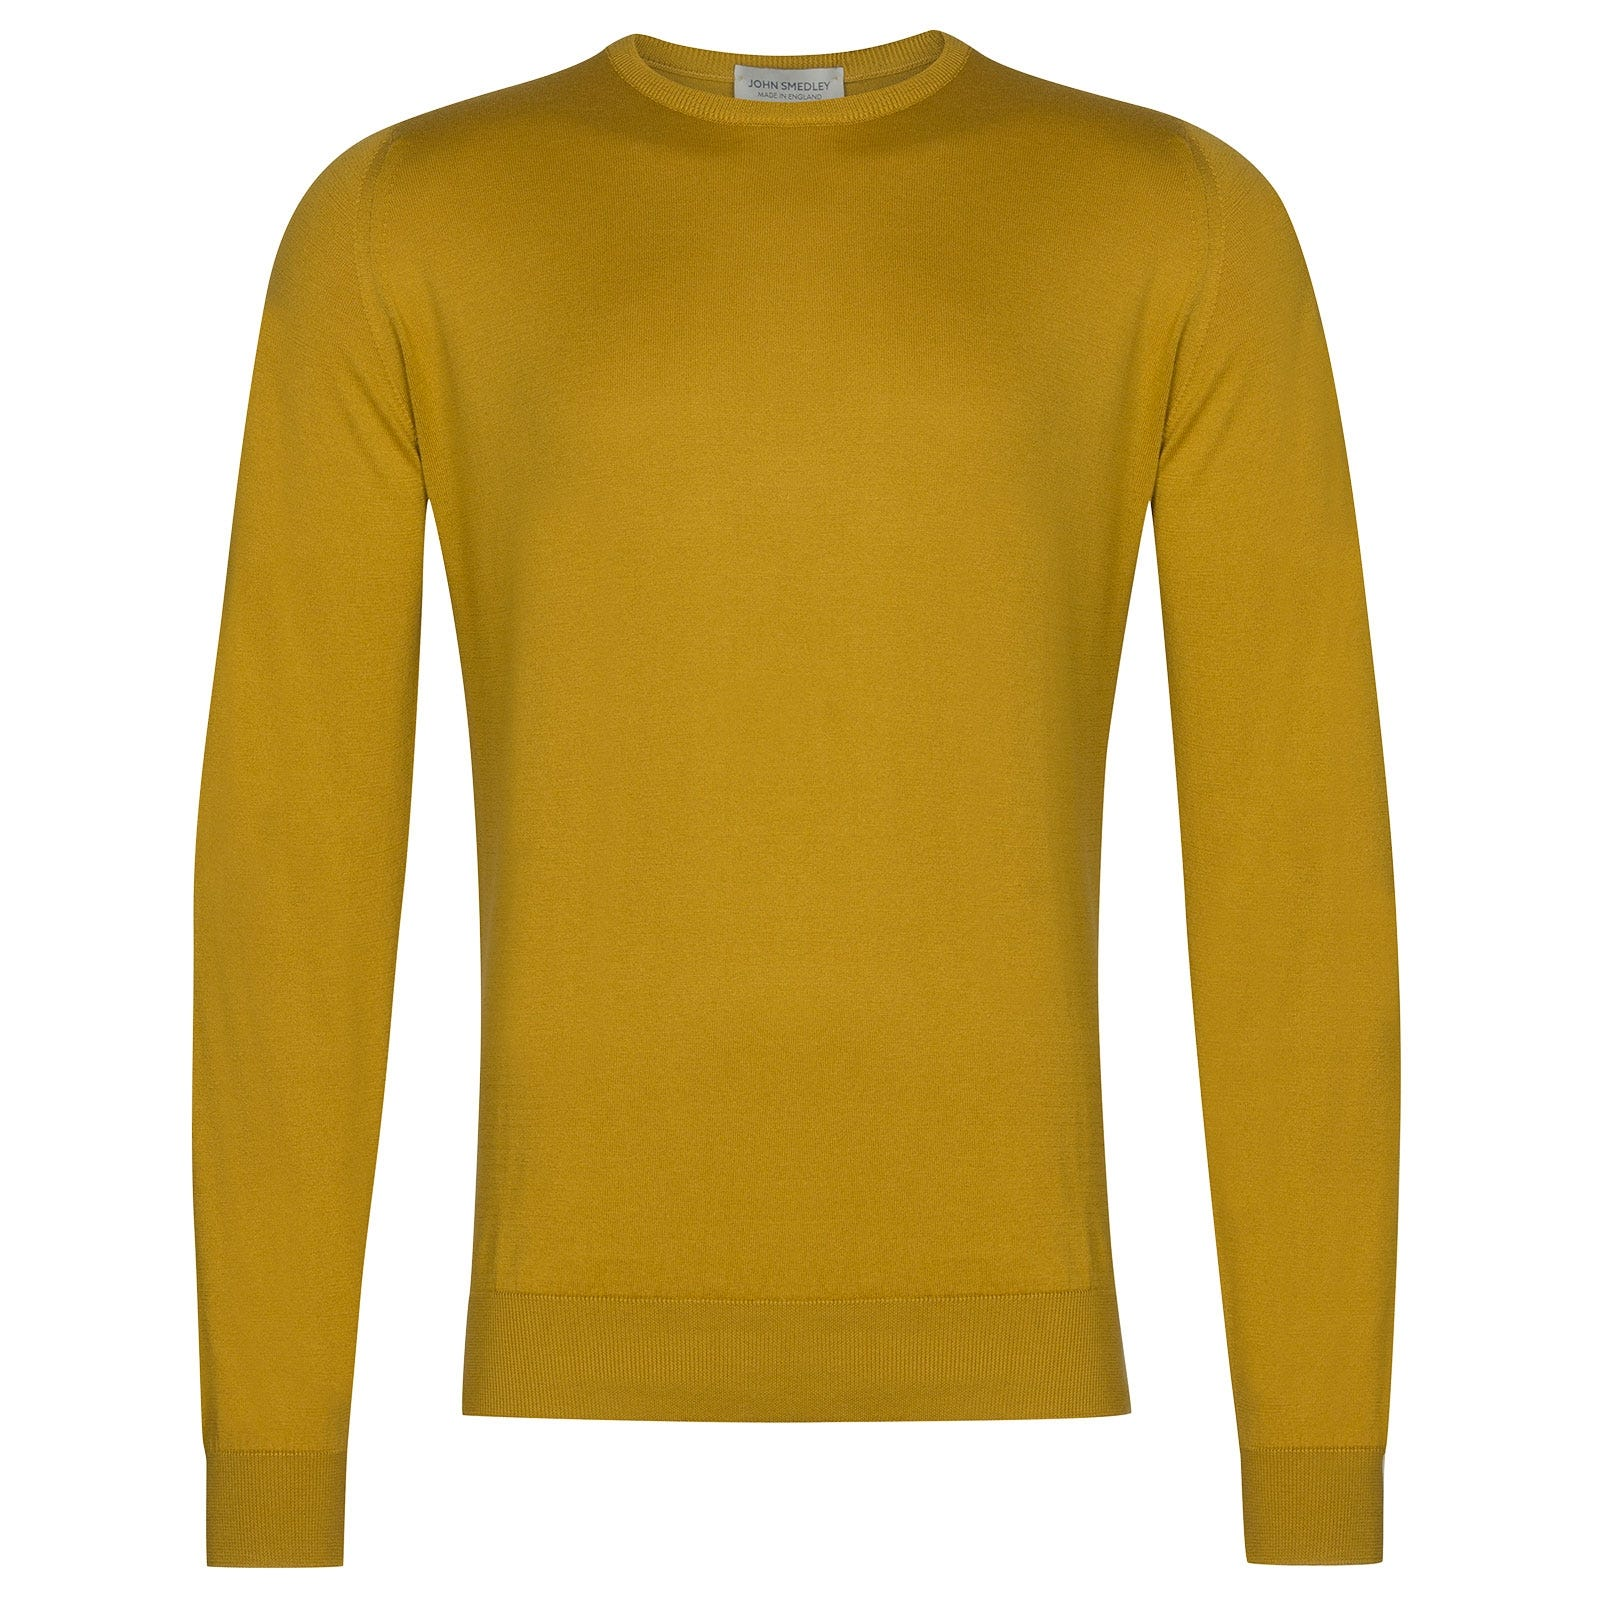 John Smedley Hatfield in Stamen Yellow Pullover-XLG